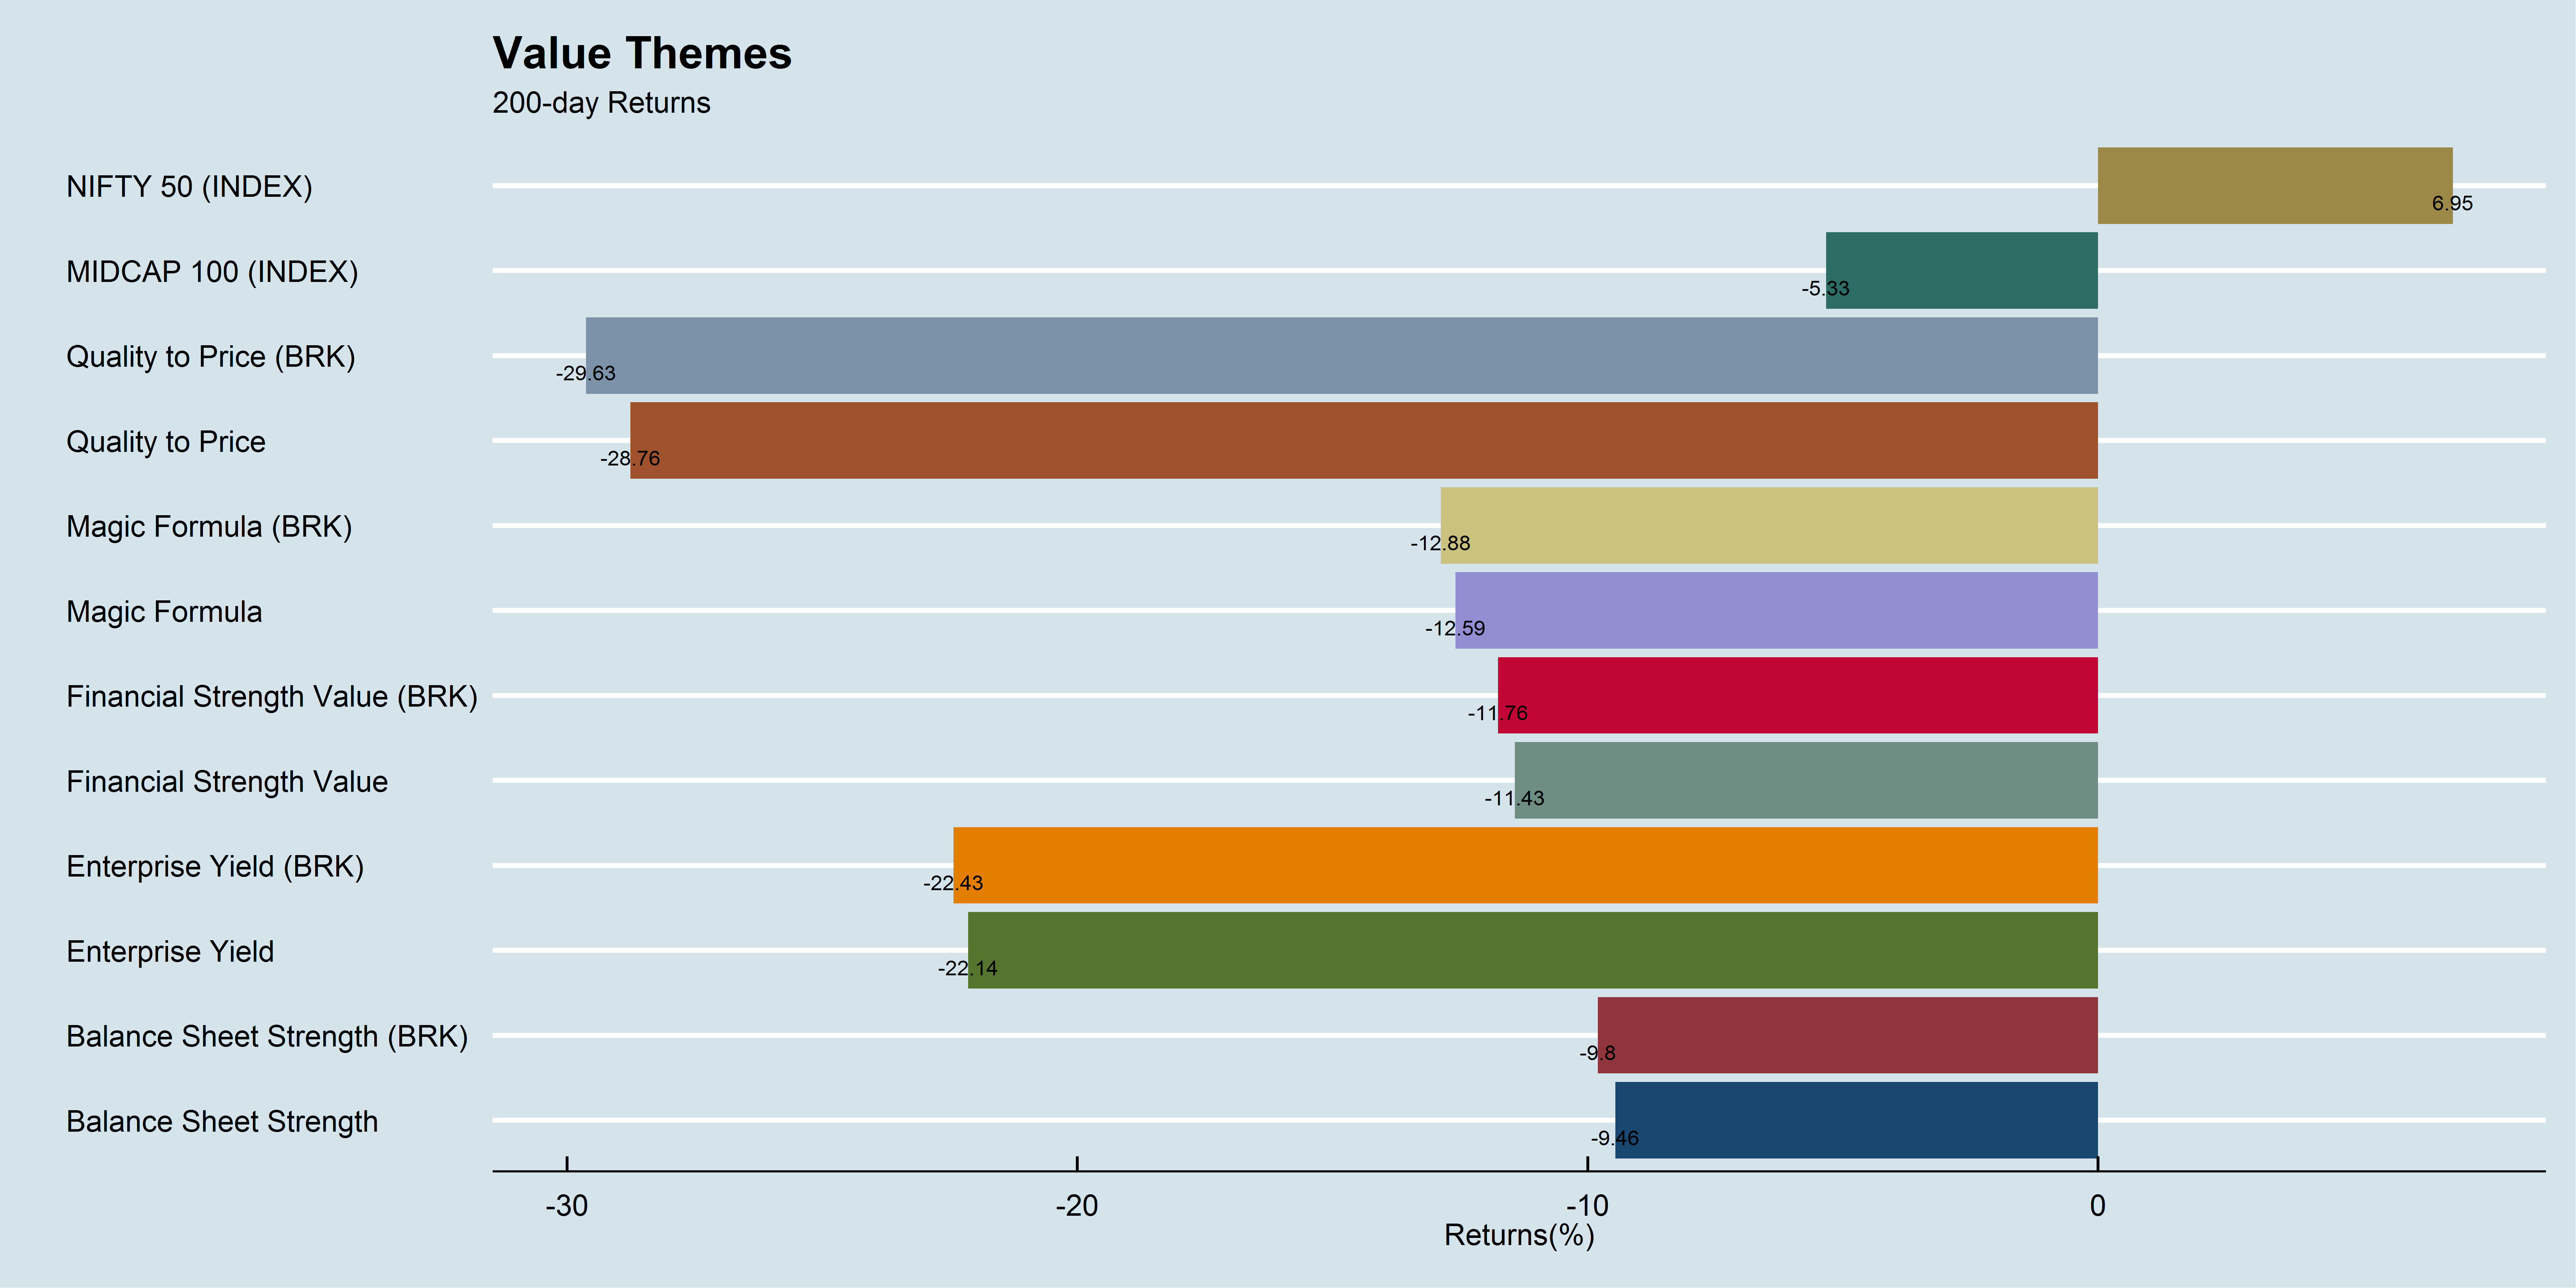 Value Themes 200-day performance